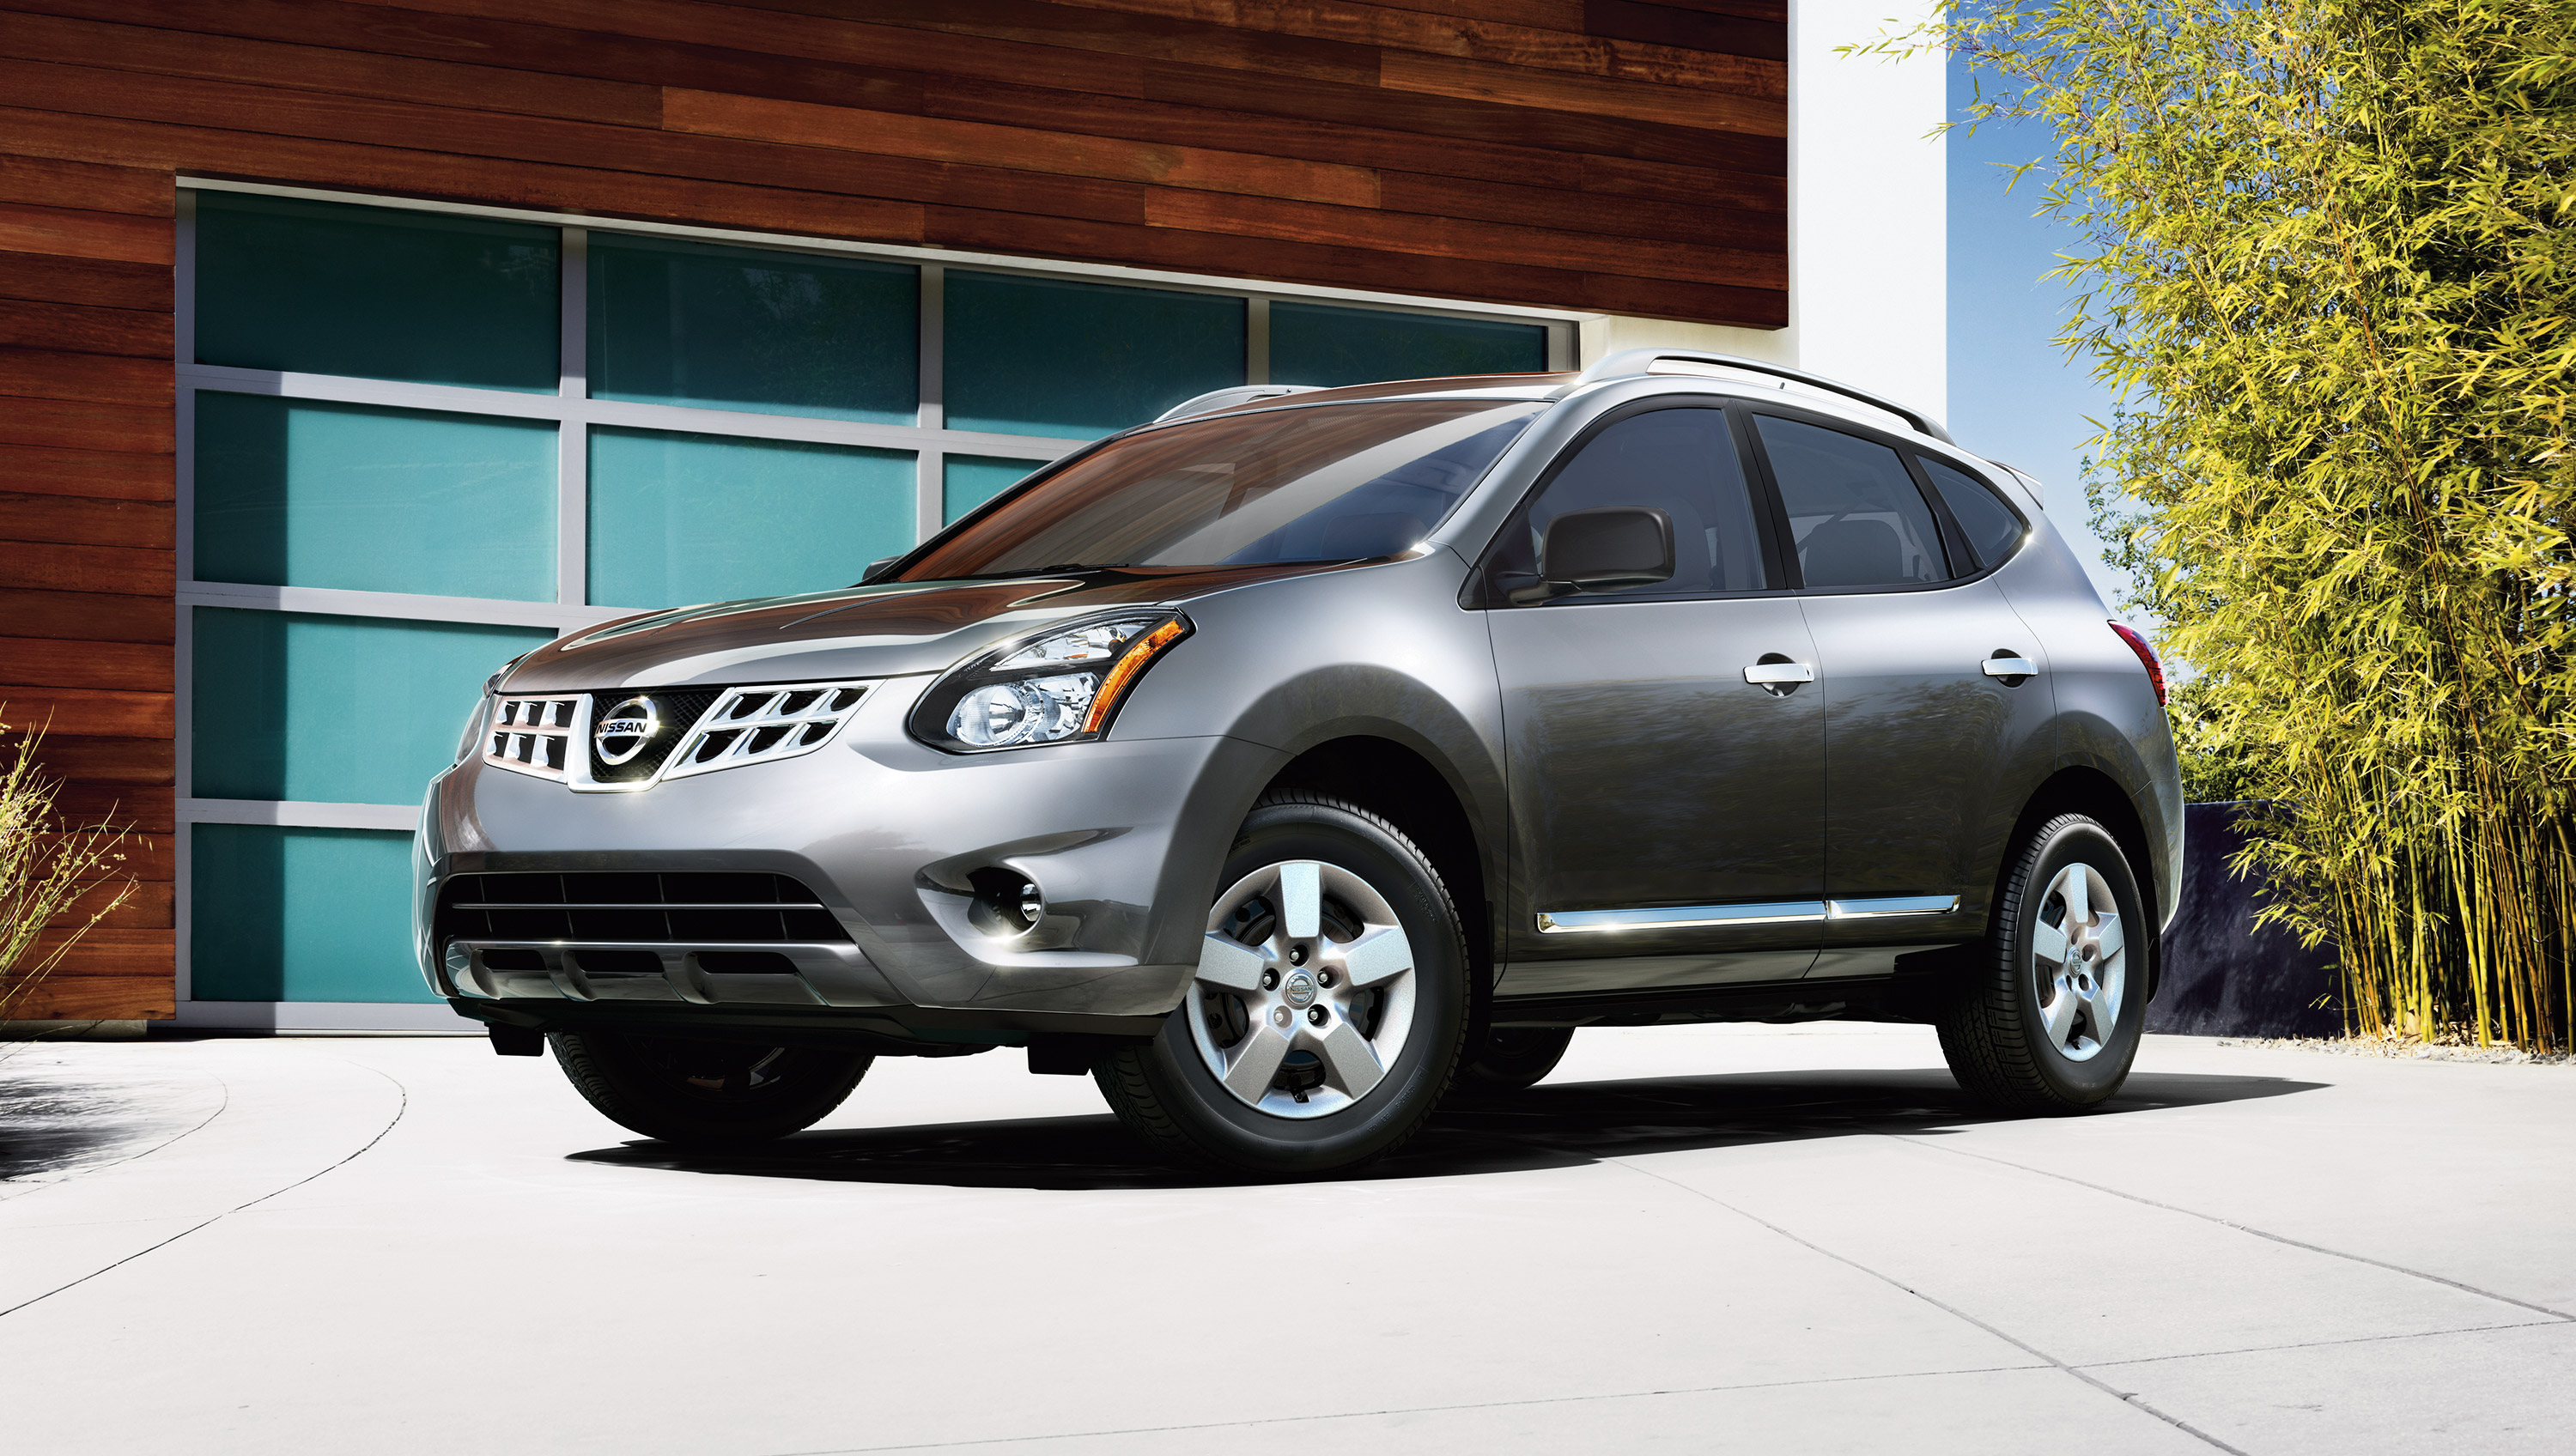 nissan at for price used mitsubishi amazing rogue sale sherbrooke